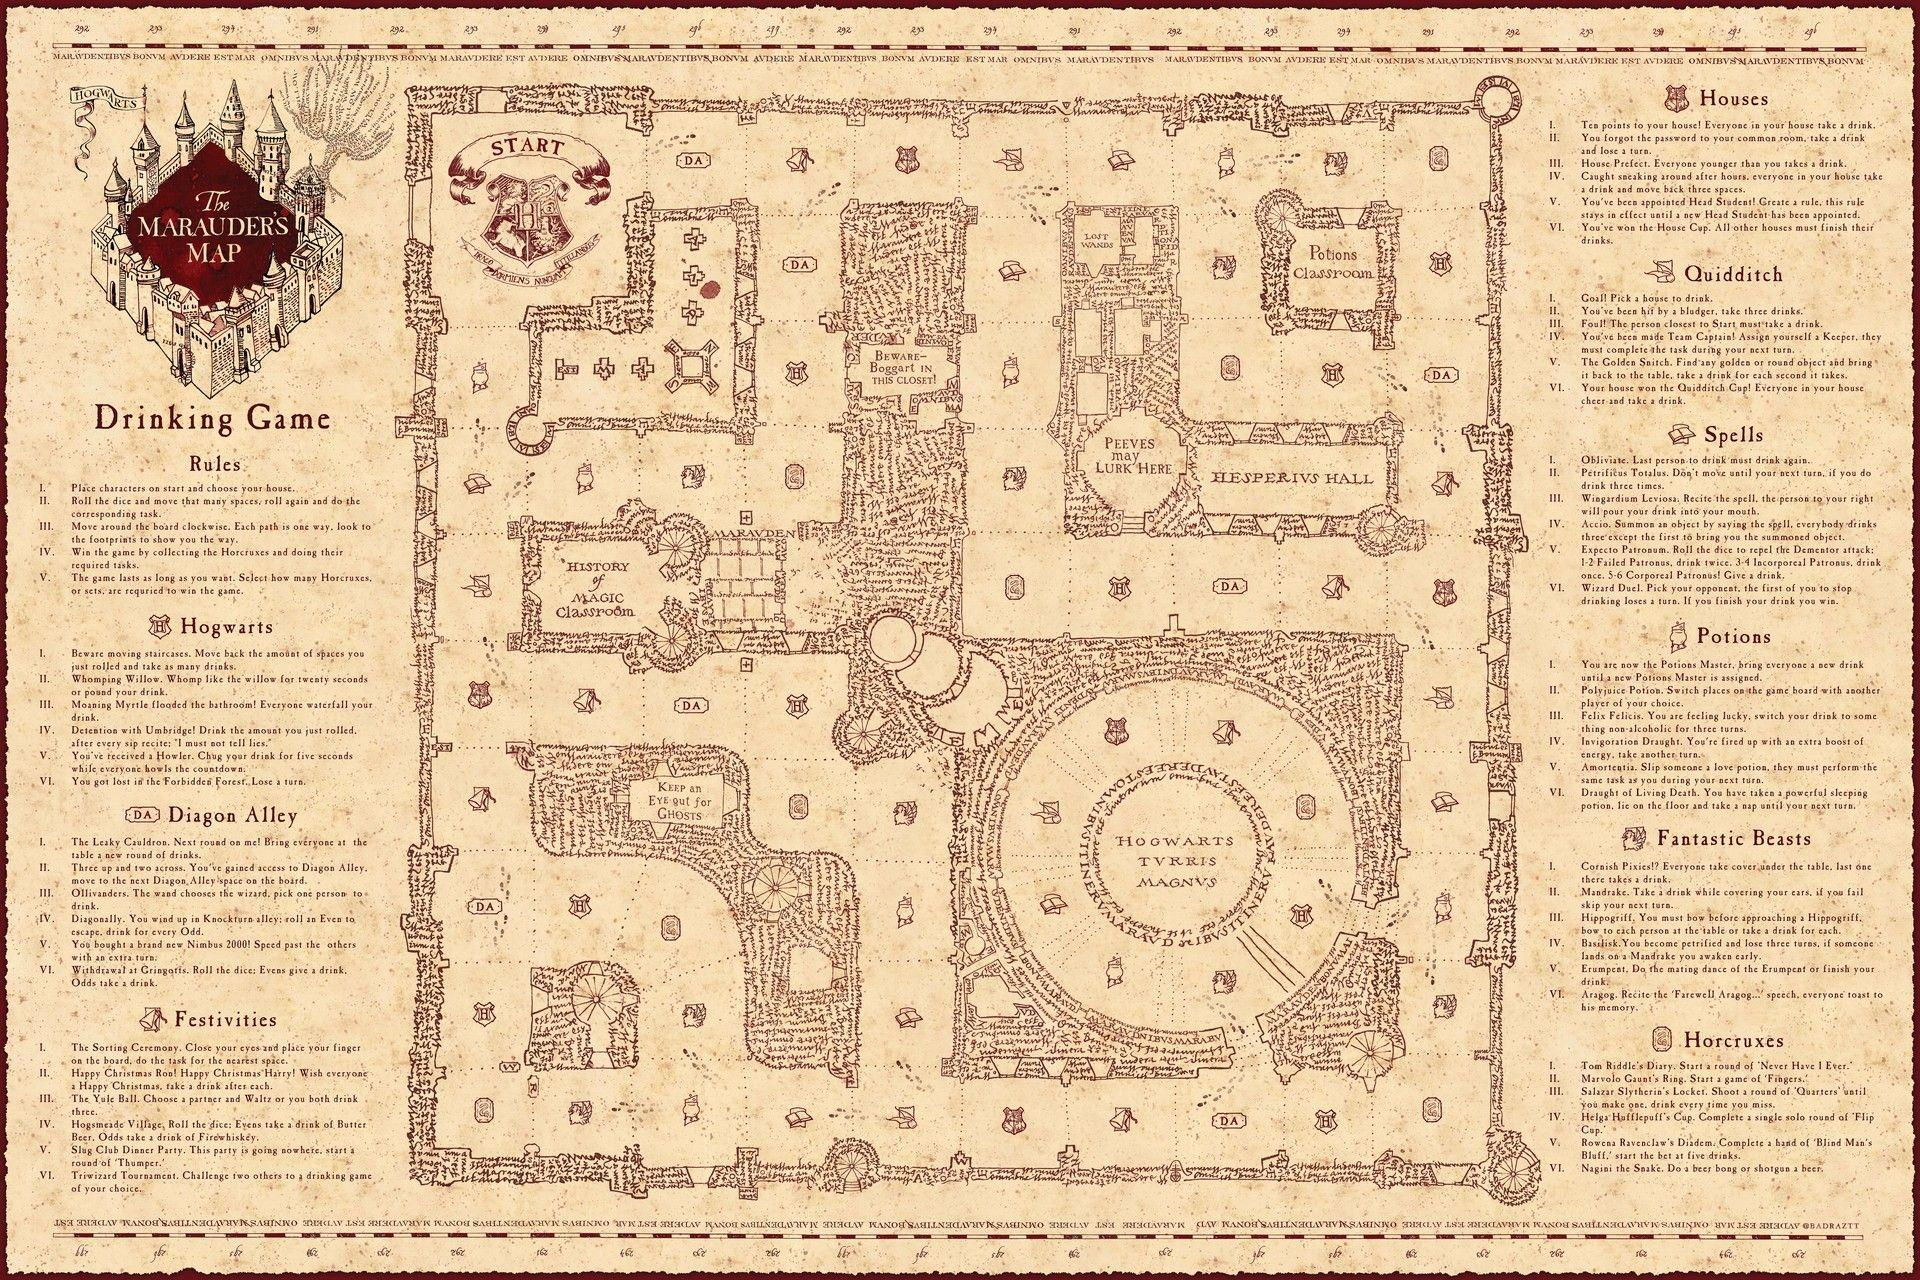 Eloquent image with printable marauders map